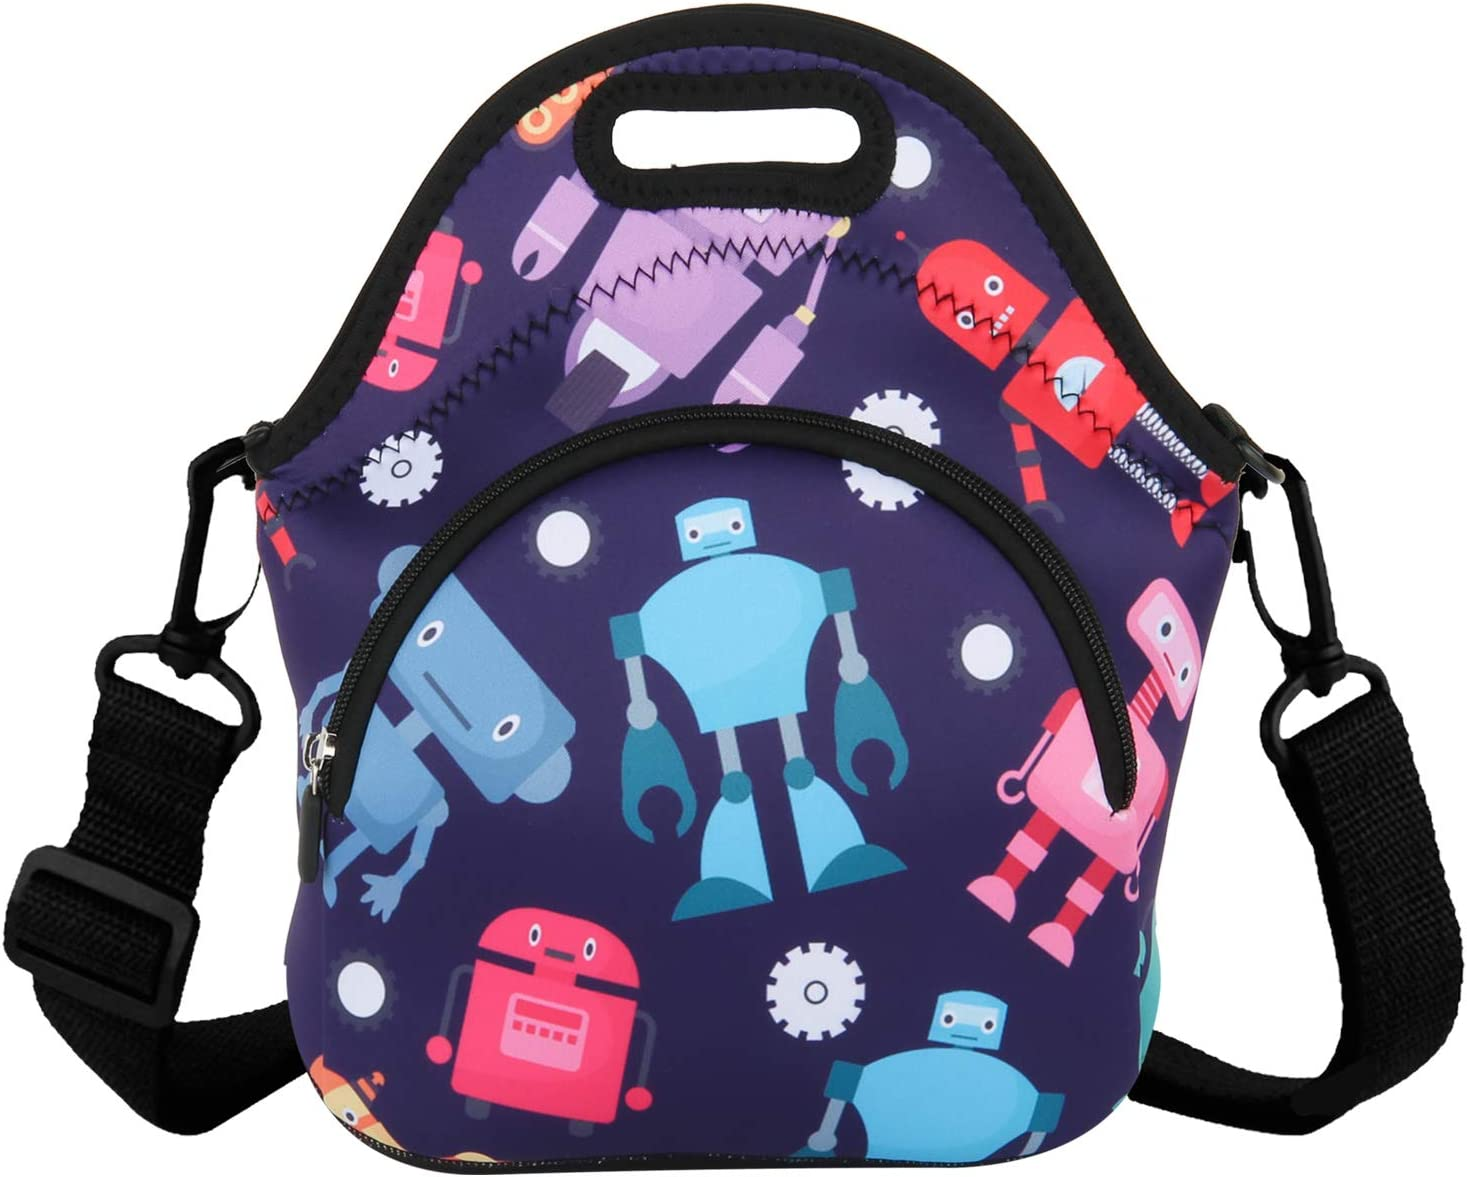 Lovely Robot Neoprene Lunch Bag Insulated Tote Lunchbox Carrier with Zipper Pocket for Boys Girls School Office